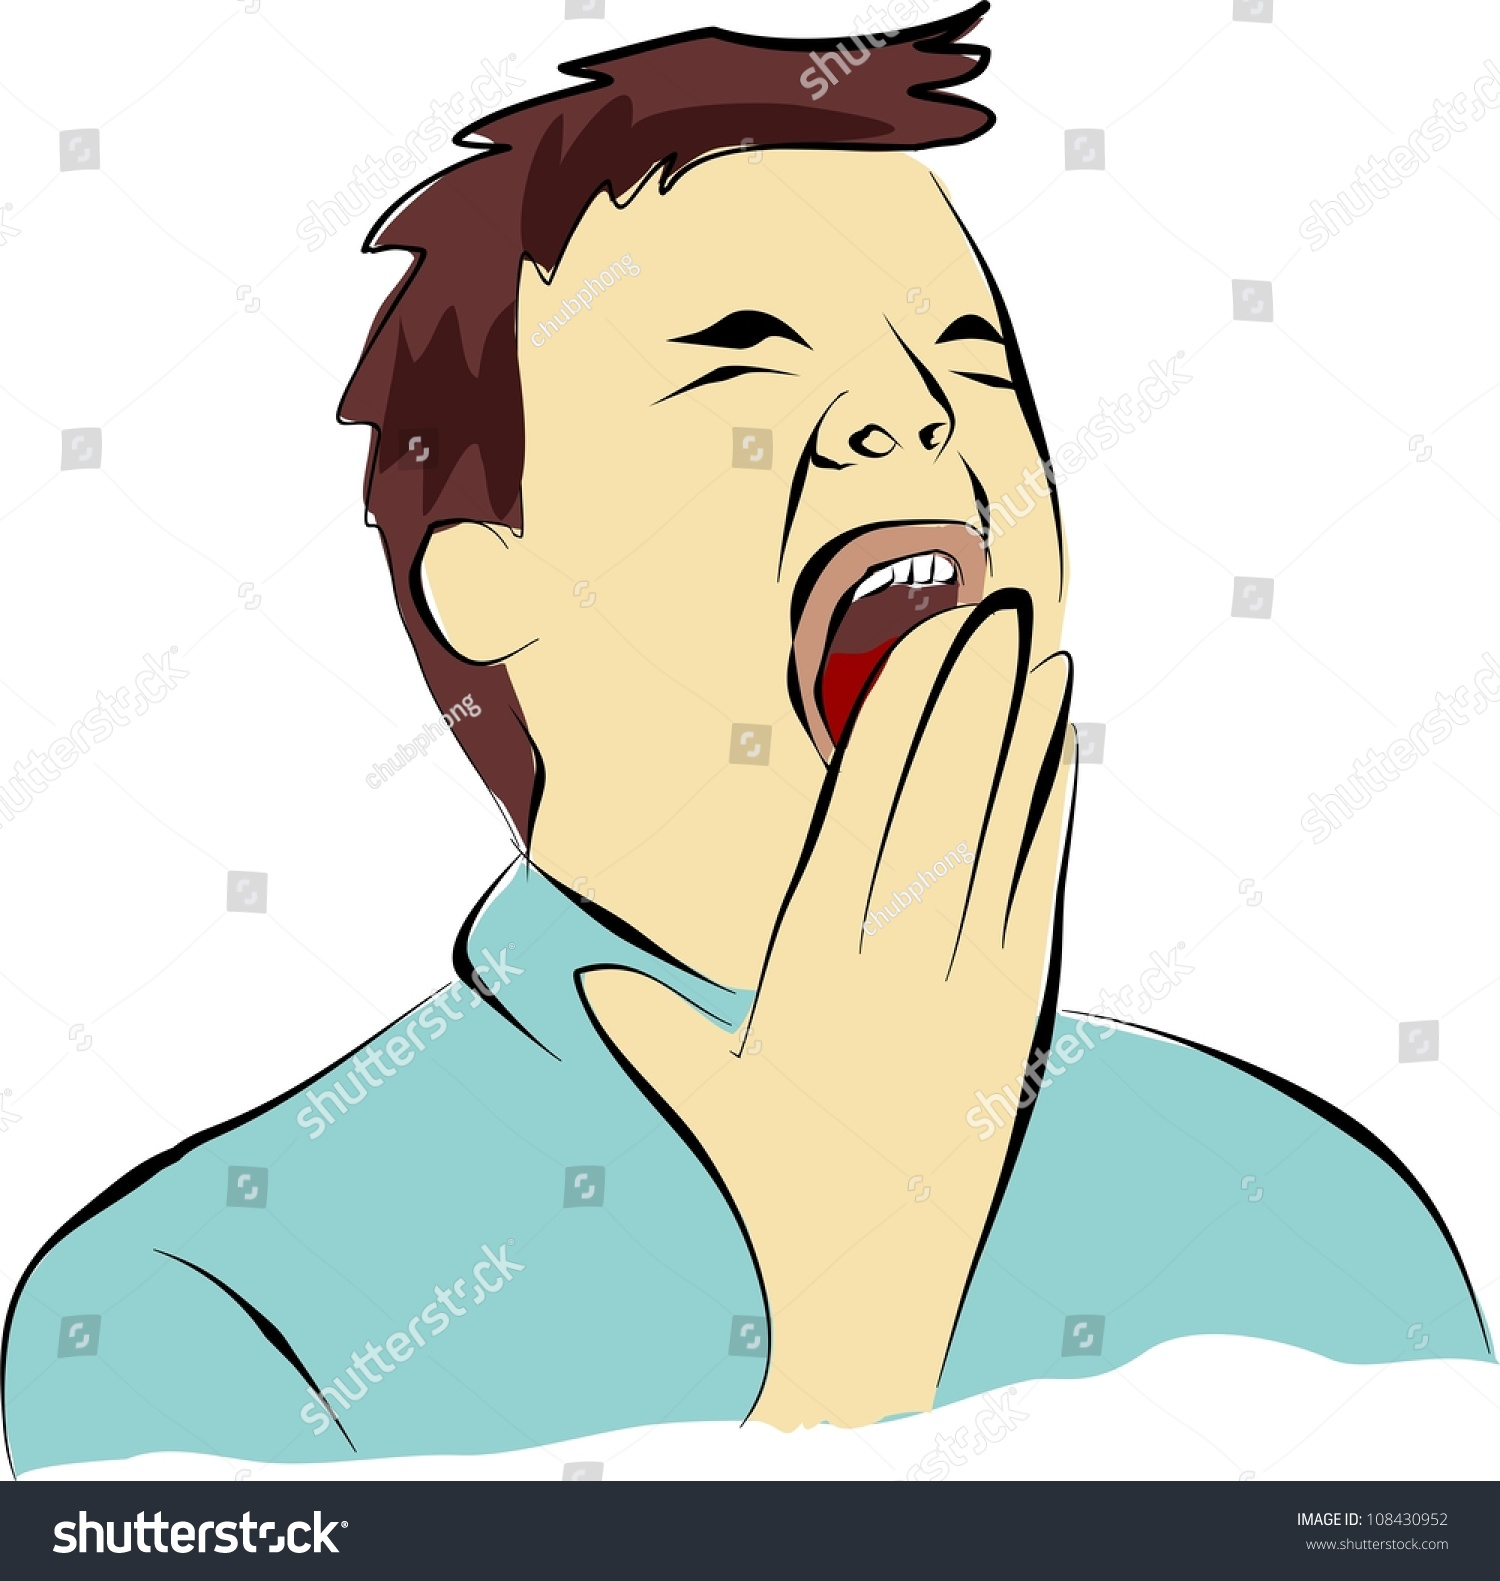 Clipart Of Someone Yawning